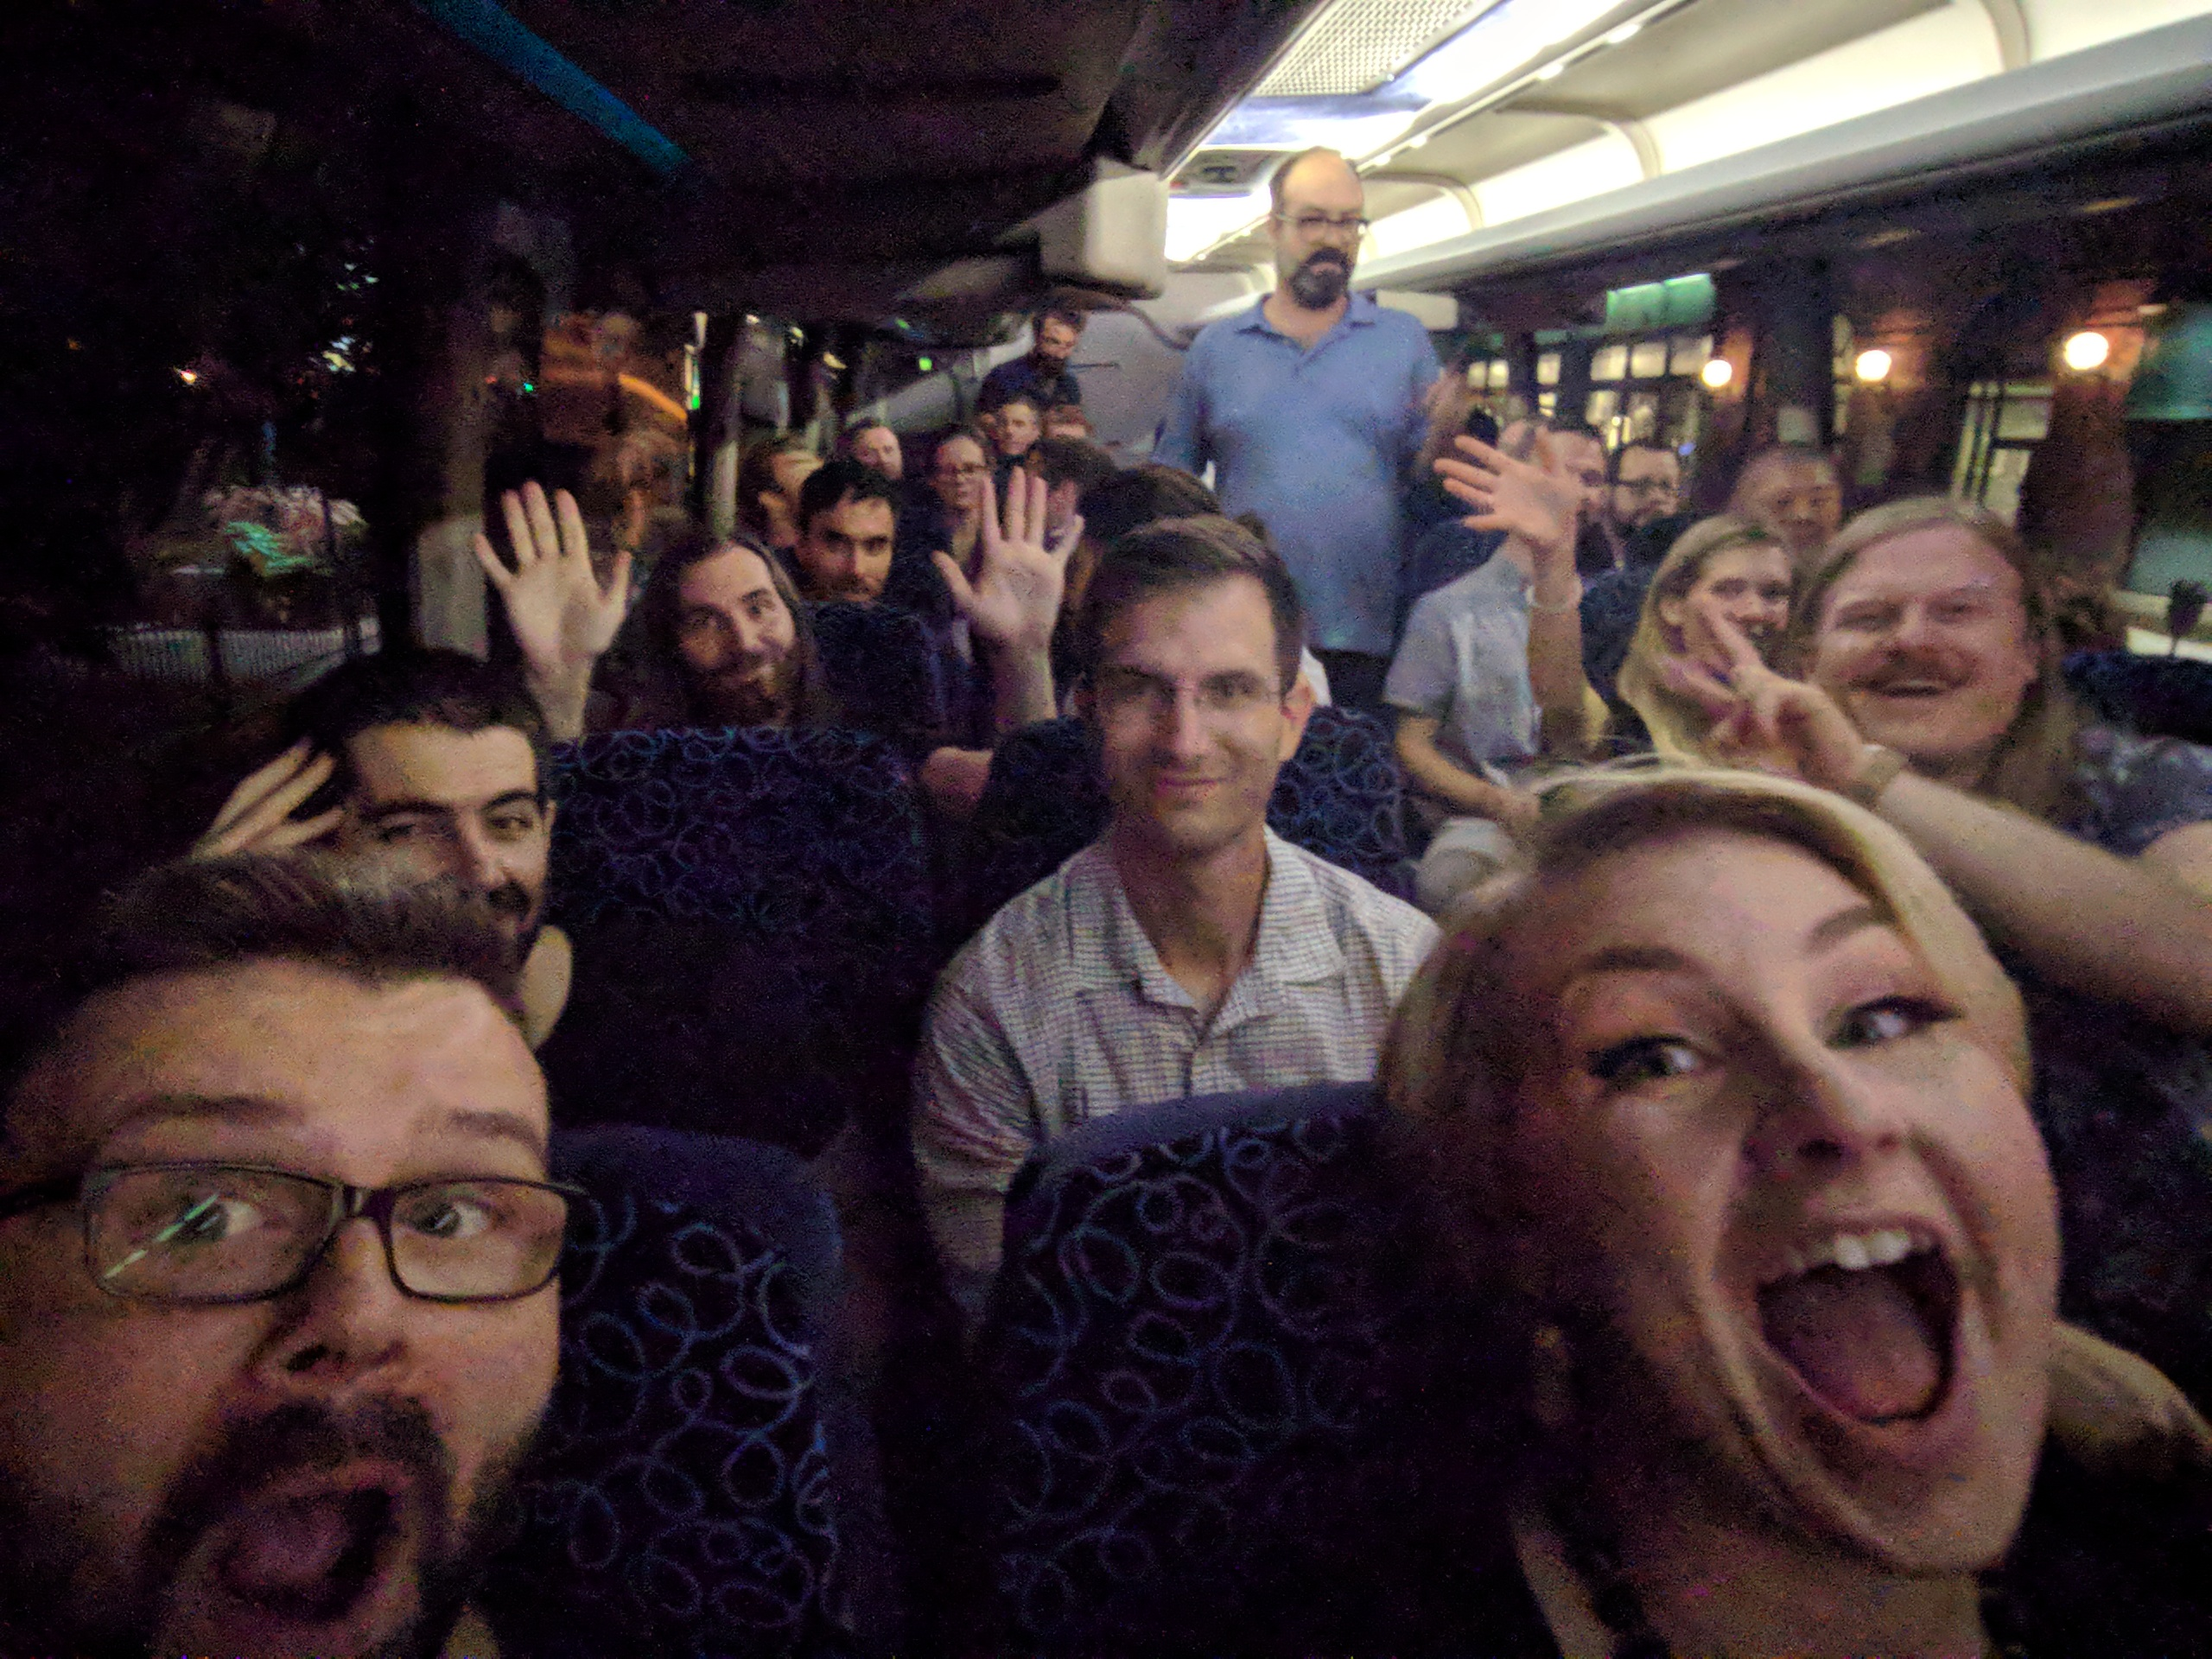 A selfie of many team members on a bus smiling and waving their hands